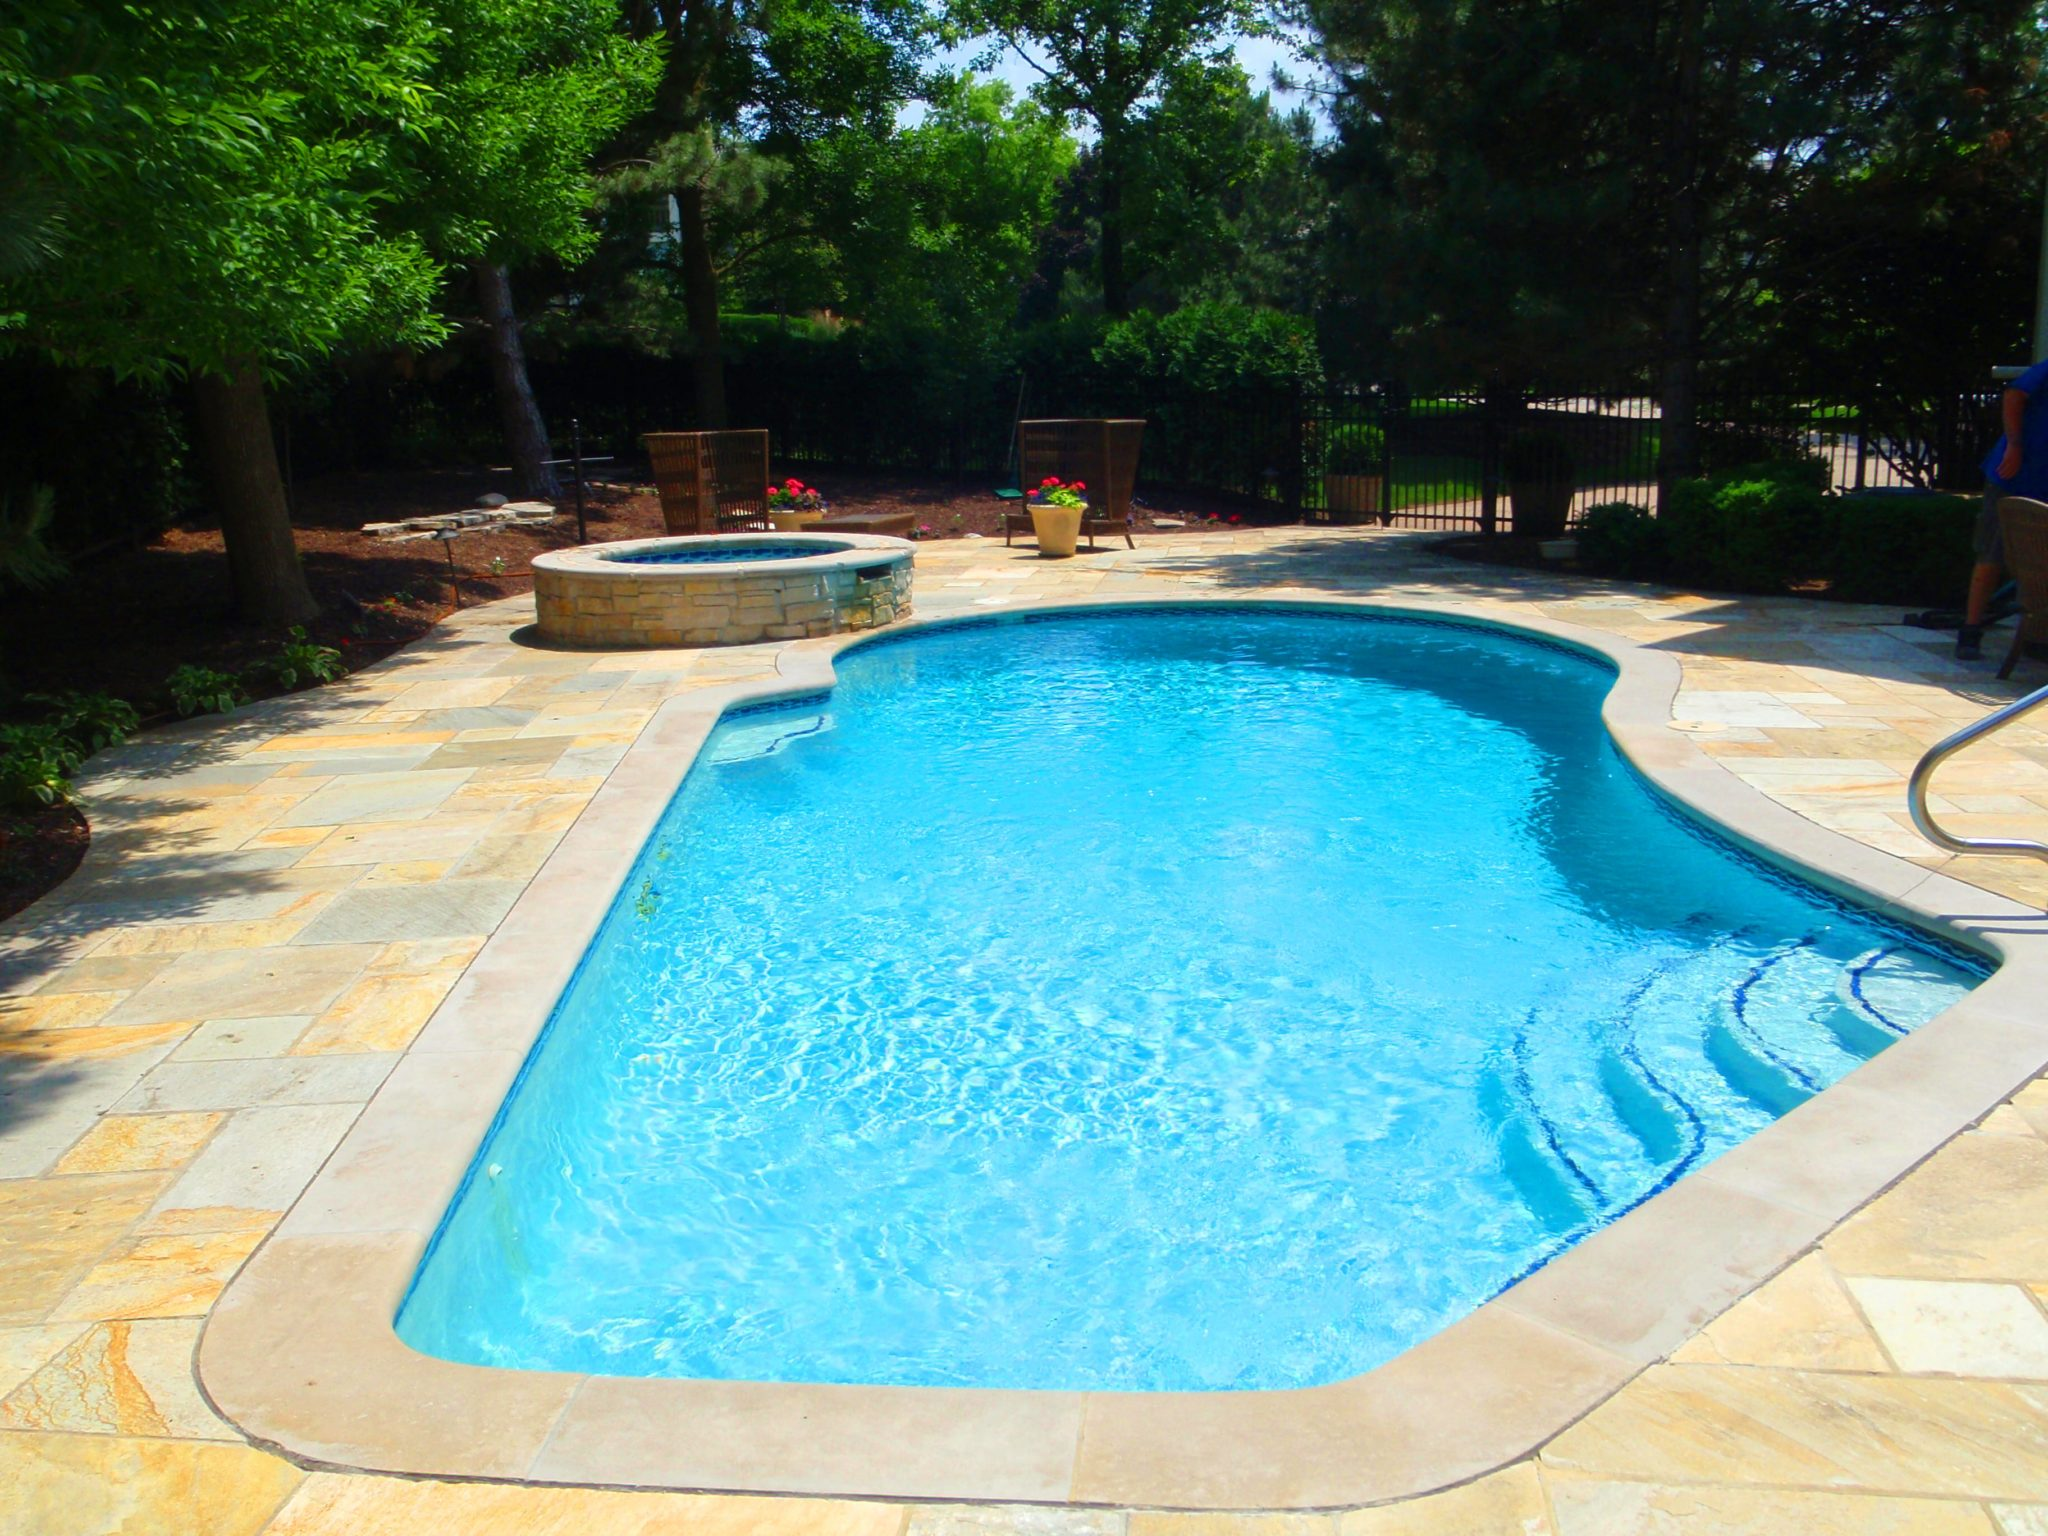 Gunite pools danna pools inc for Swimmingpool selbstaufstellend